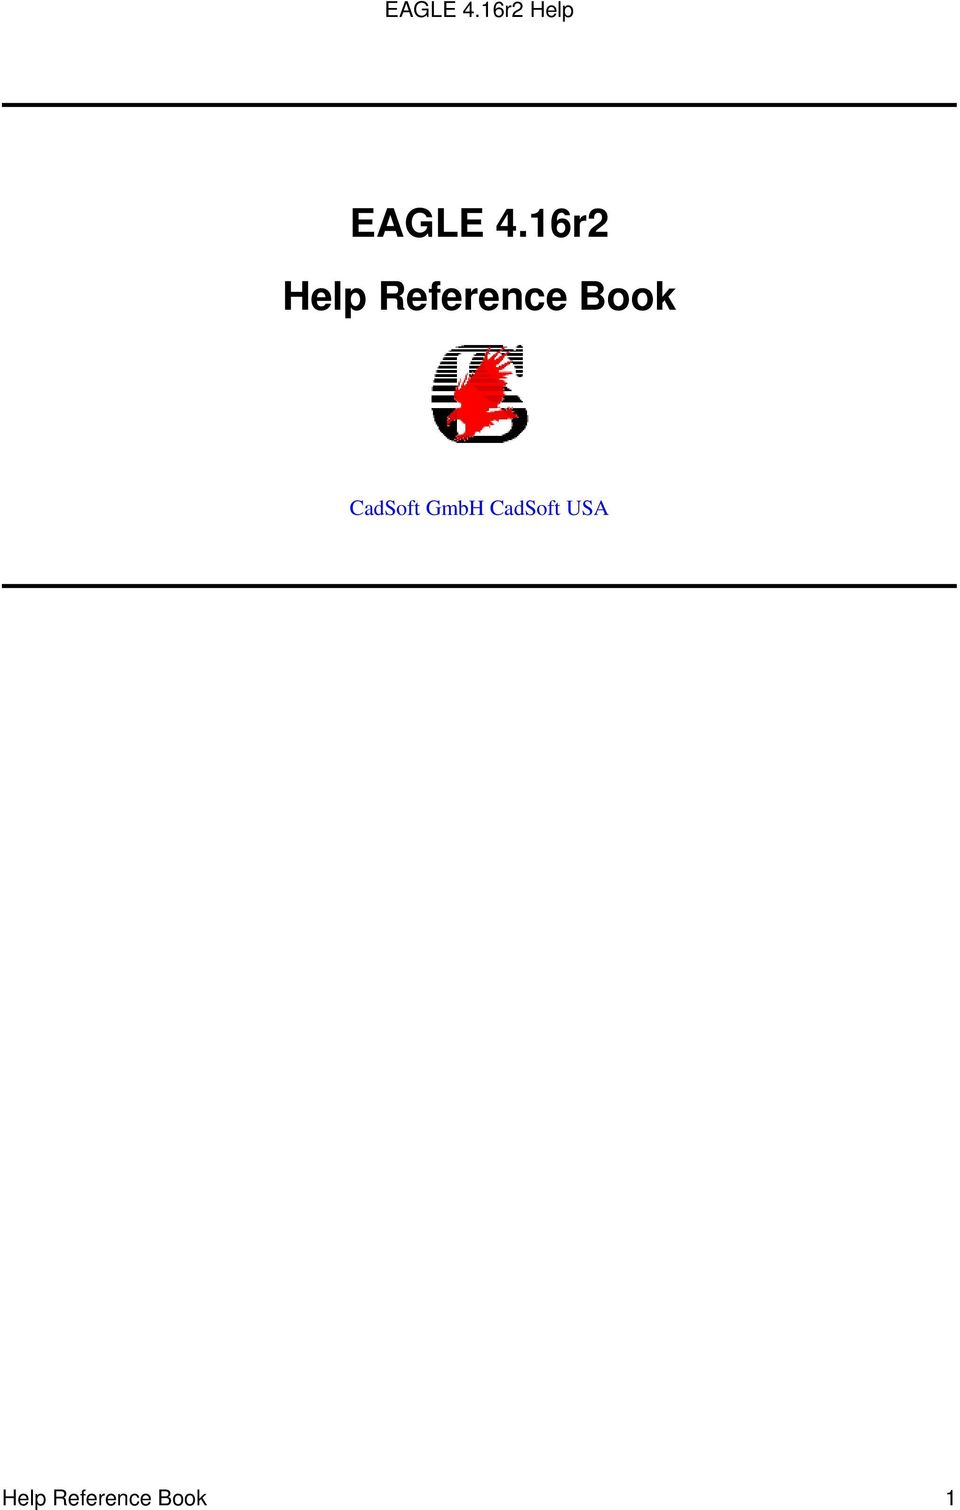 EAGLE 4.16r2 Help Reference Book - PDF